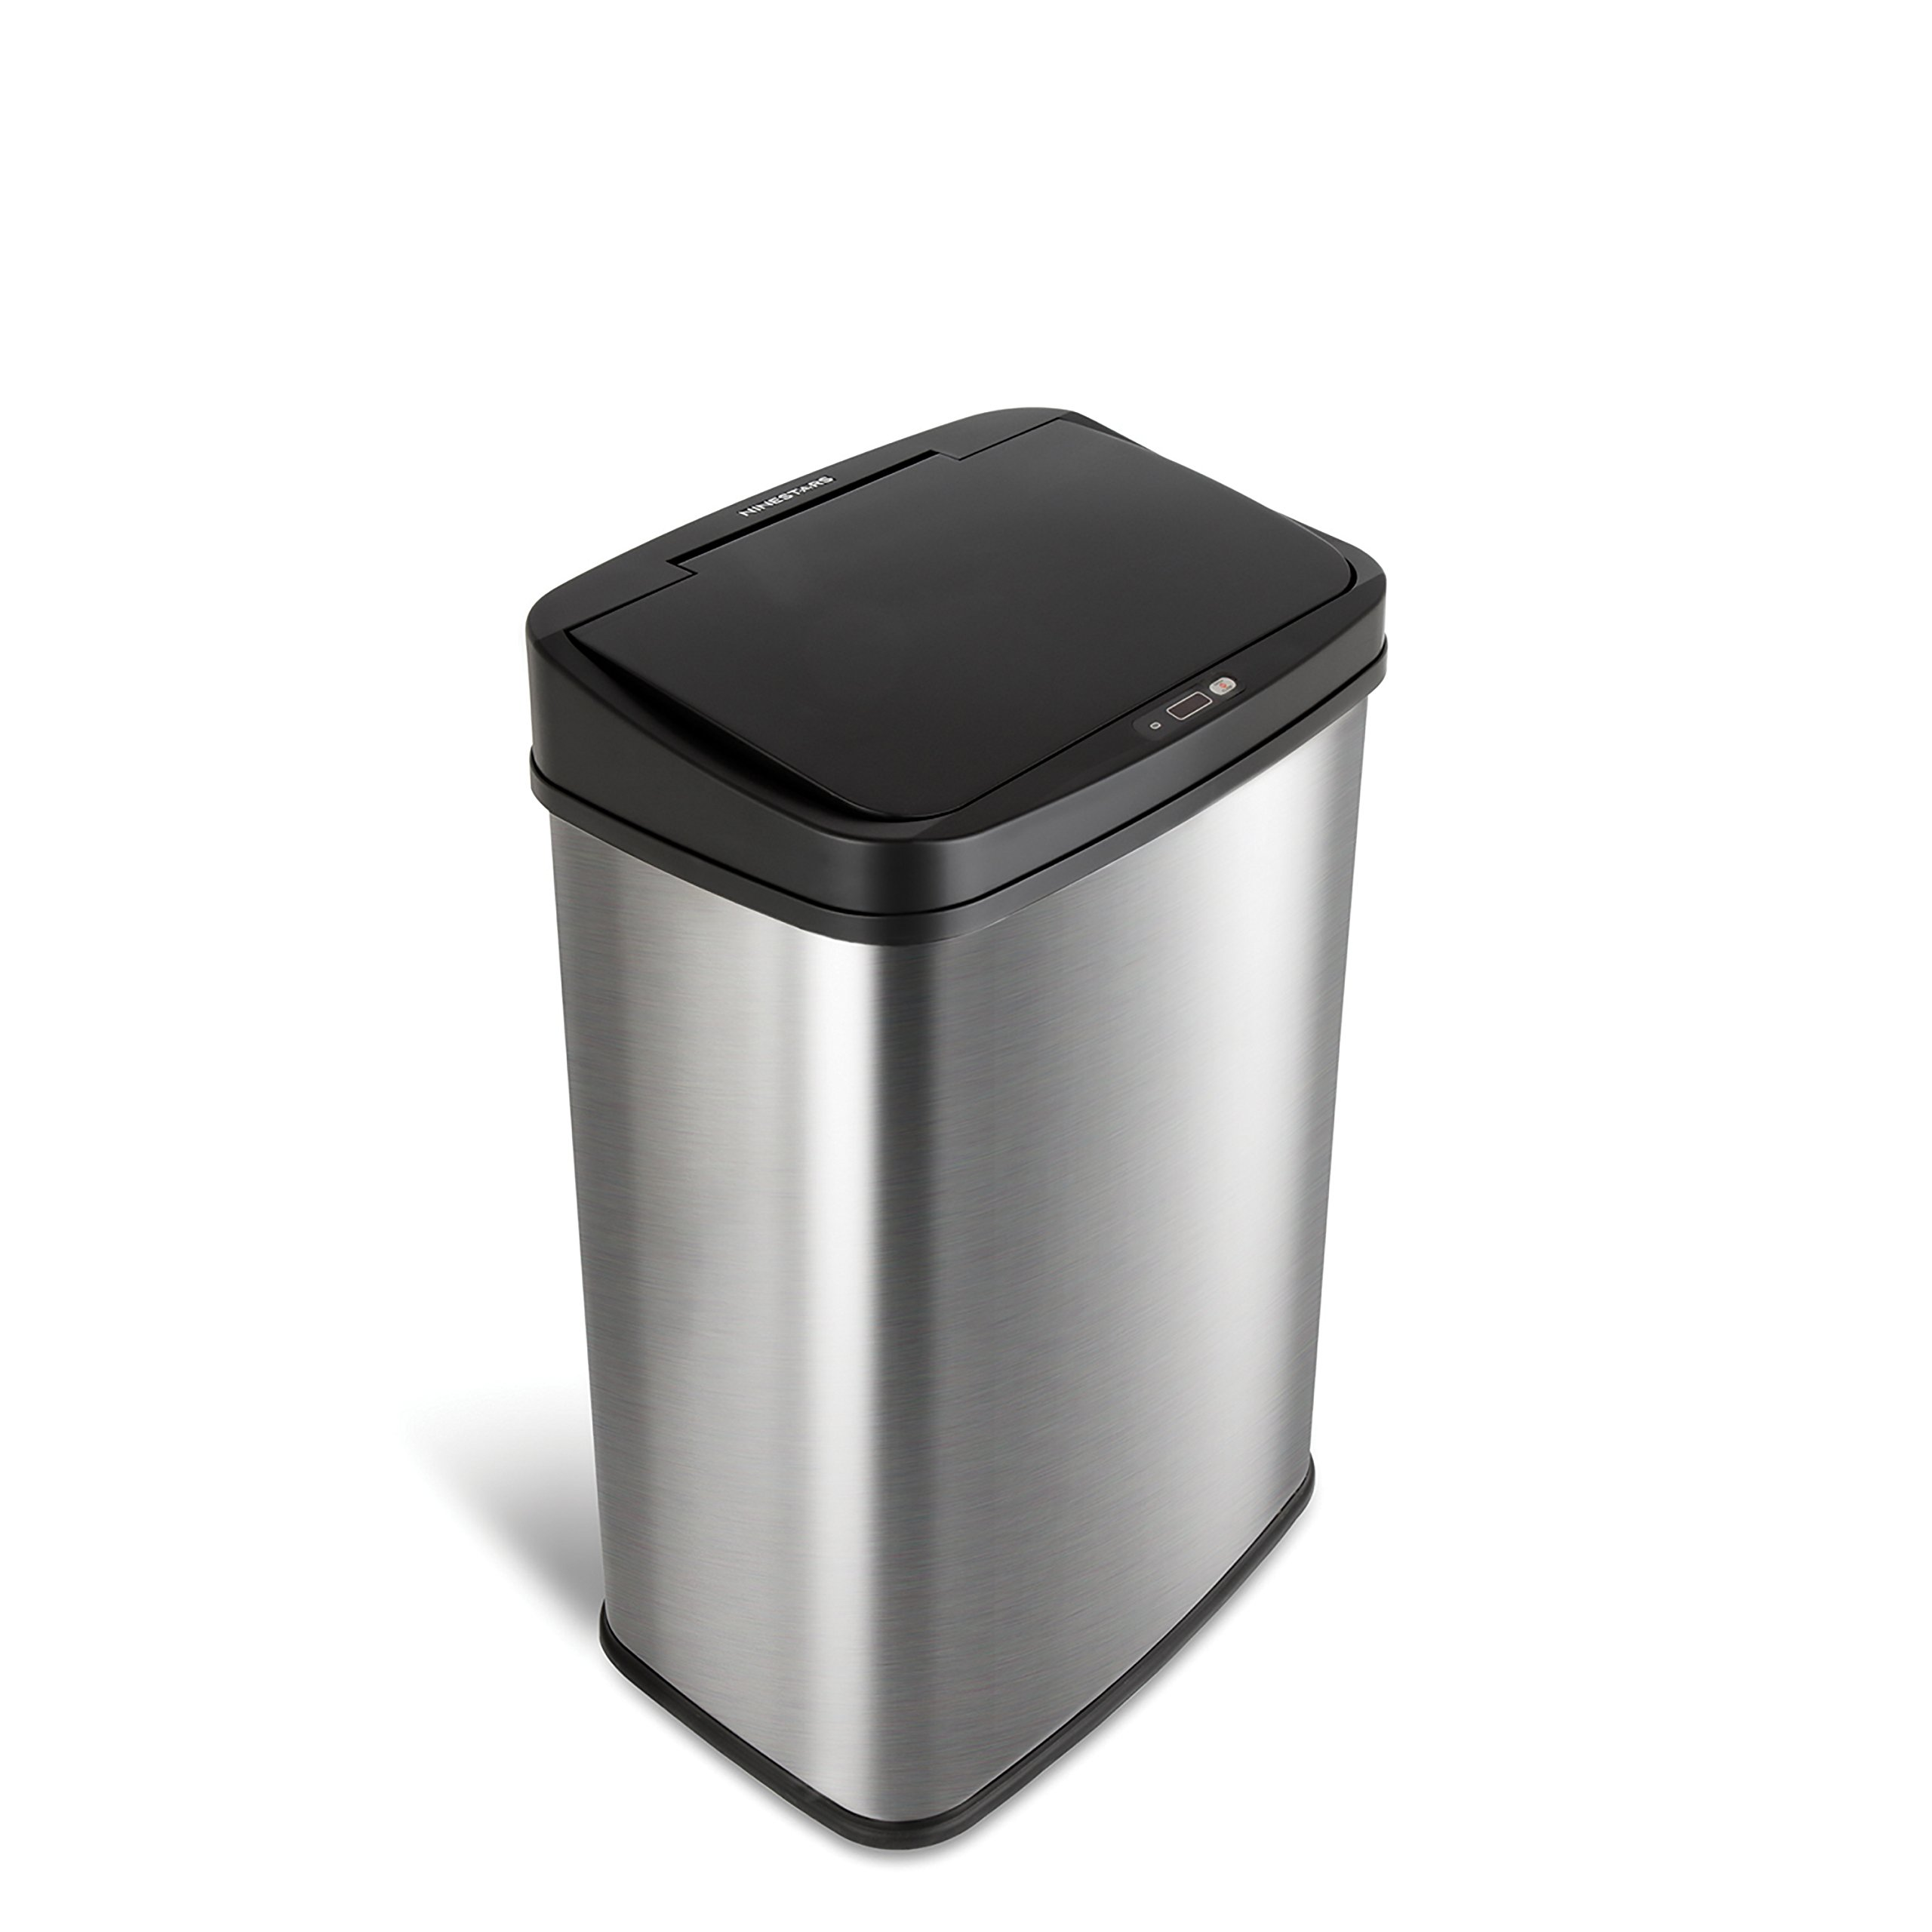 NINESTARS DZT-50-28 Automatic Touchless Infrared Motion Sensor Trash Can, 13 Gal 50L, Stainless Steel Base (Rectangular, Black Lid)